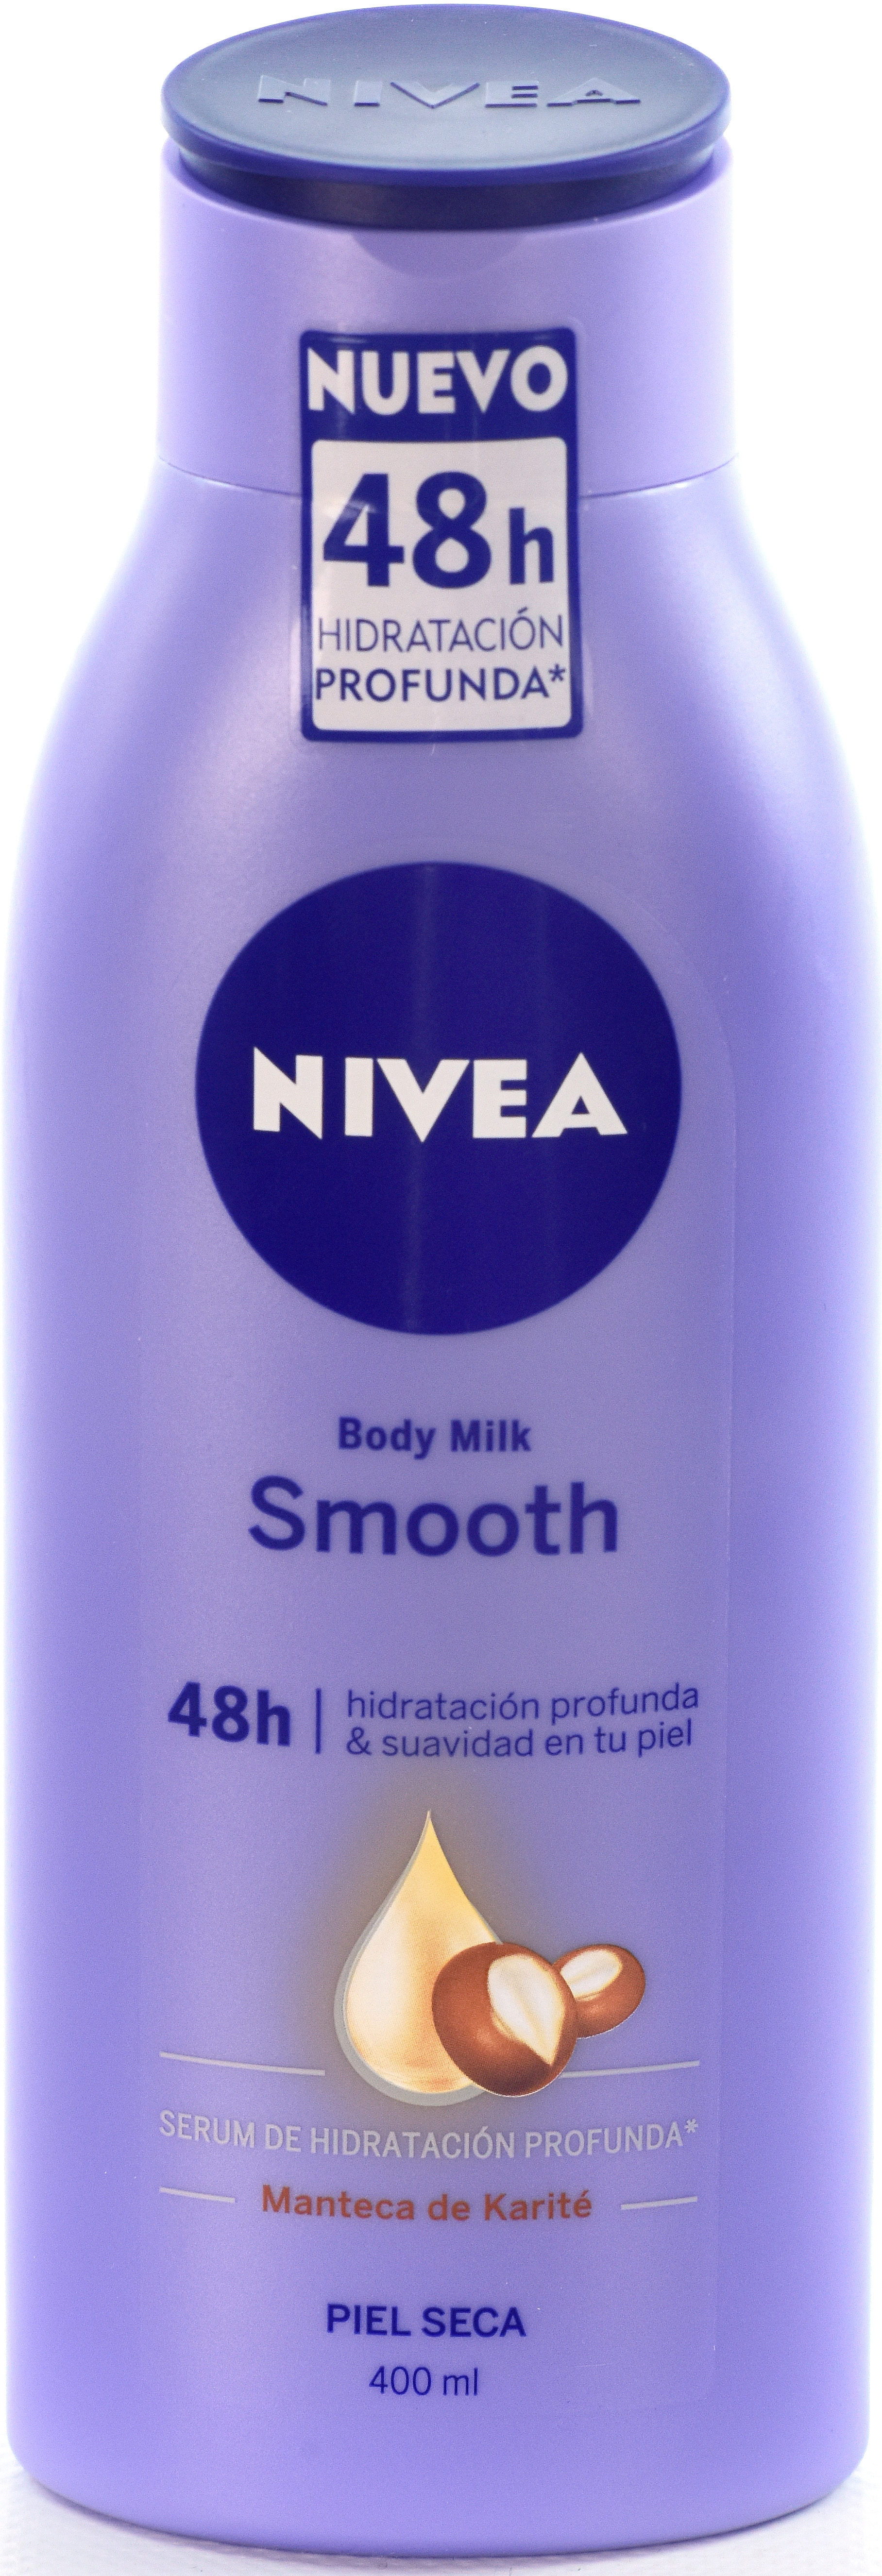 BODY MILK SMOOTH. 48H HIDRATACIÓN PROFUNDA